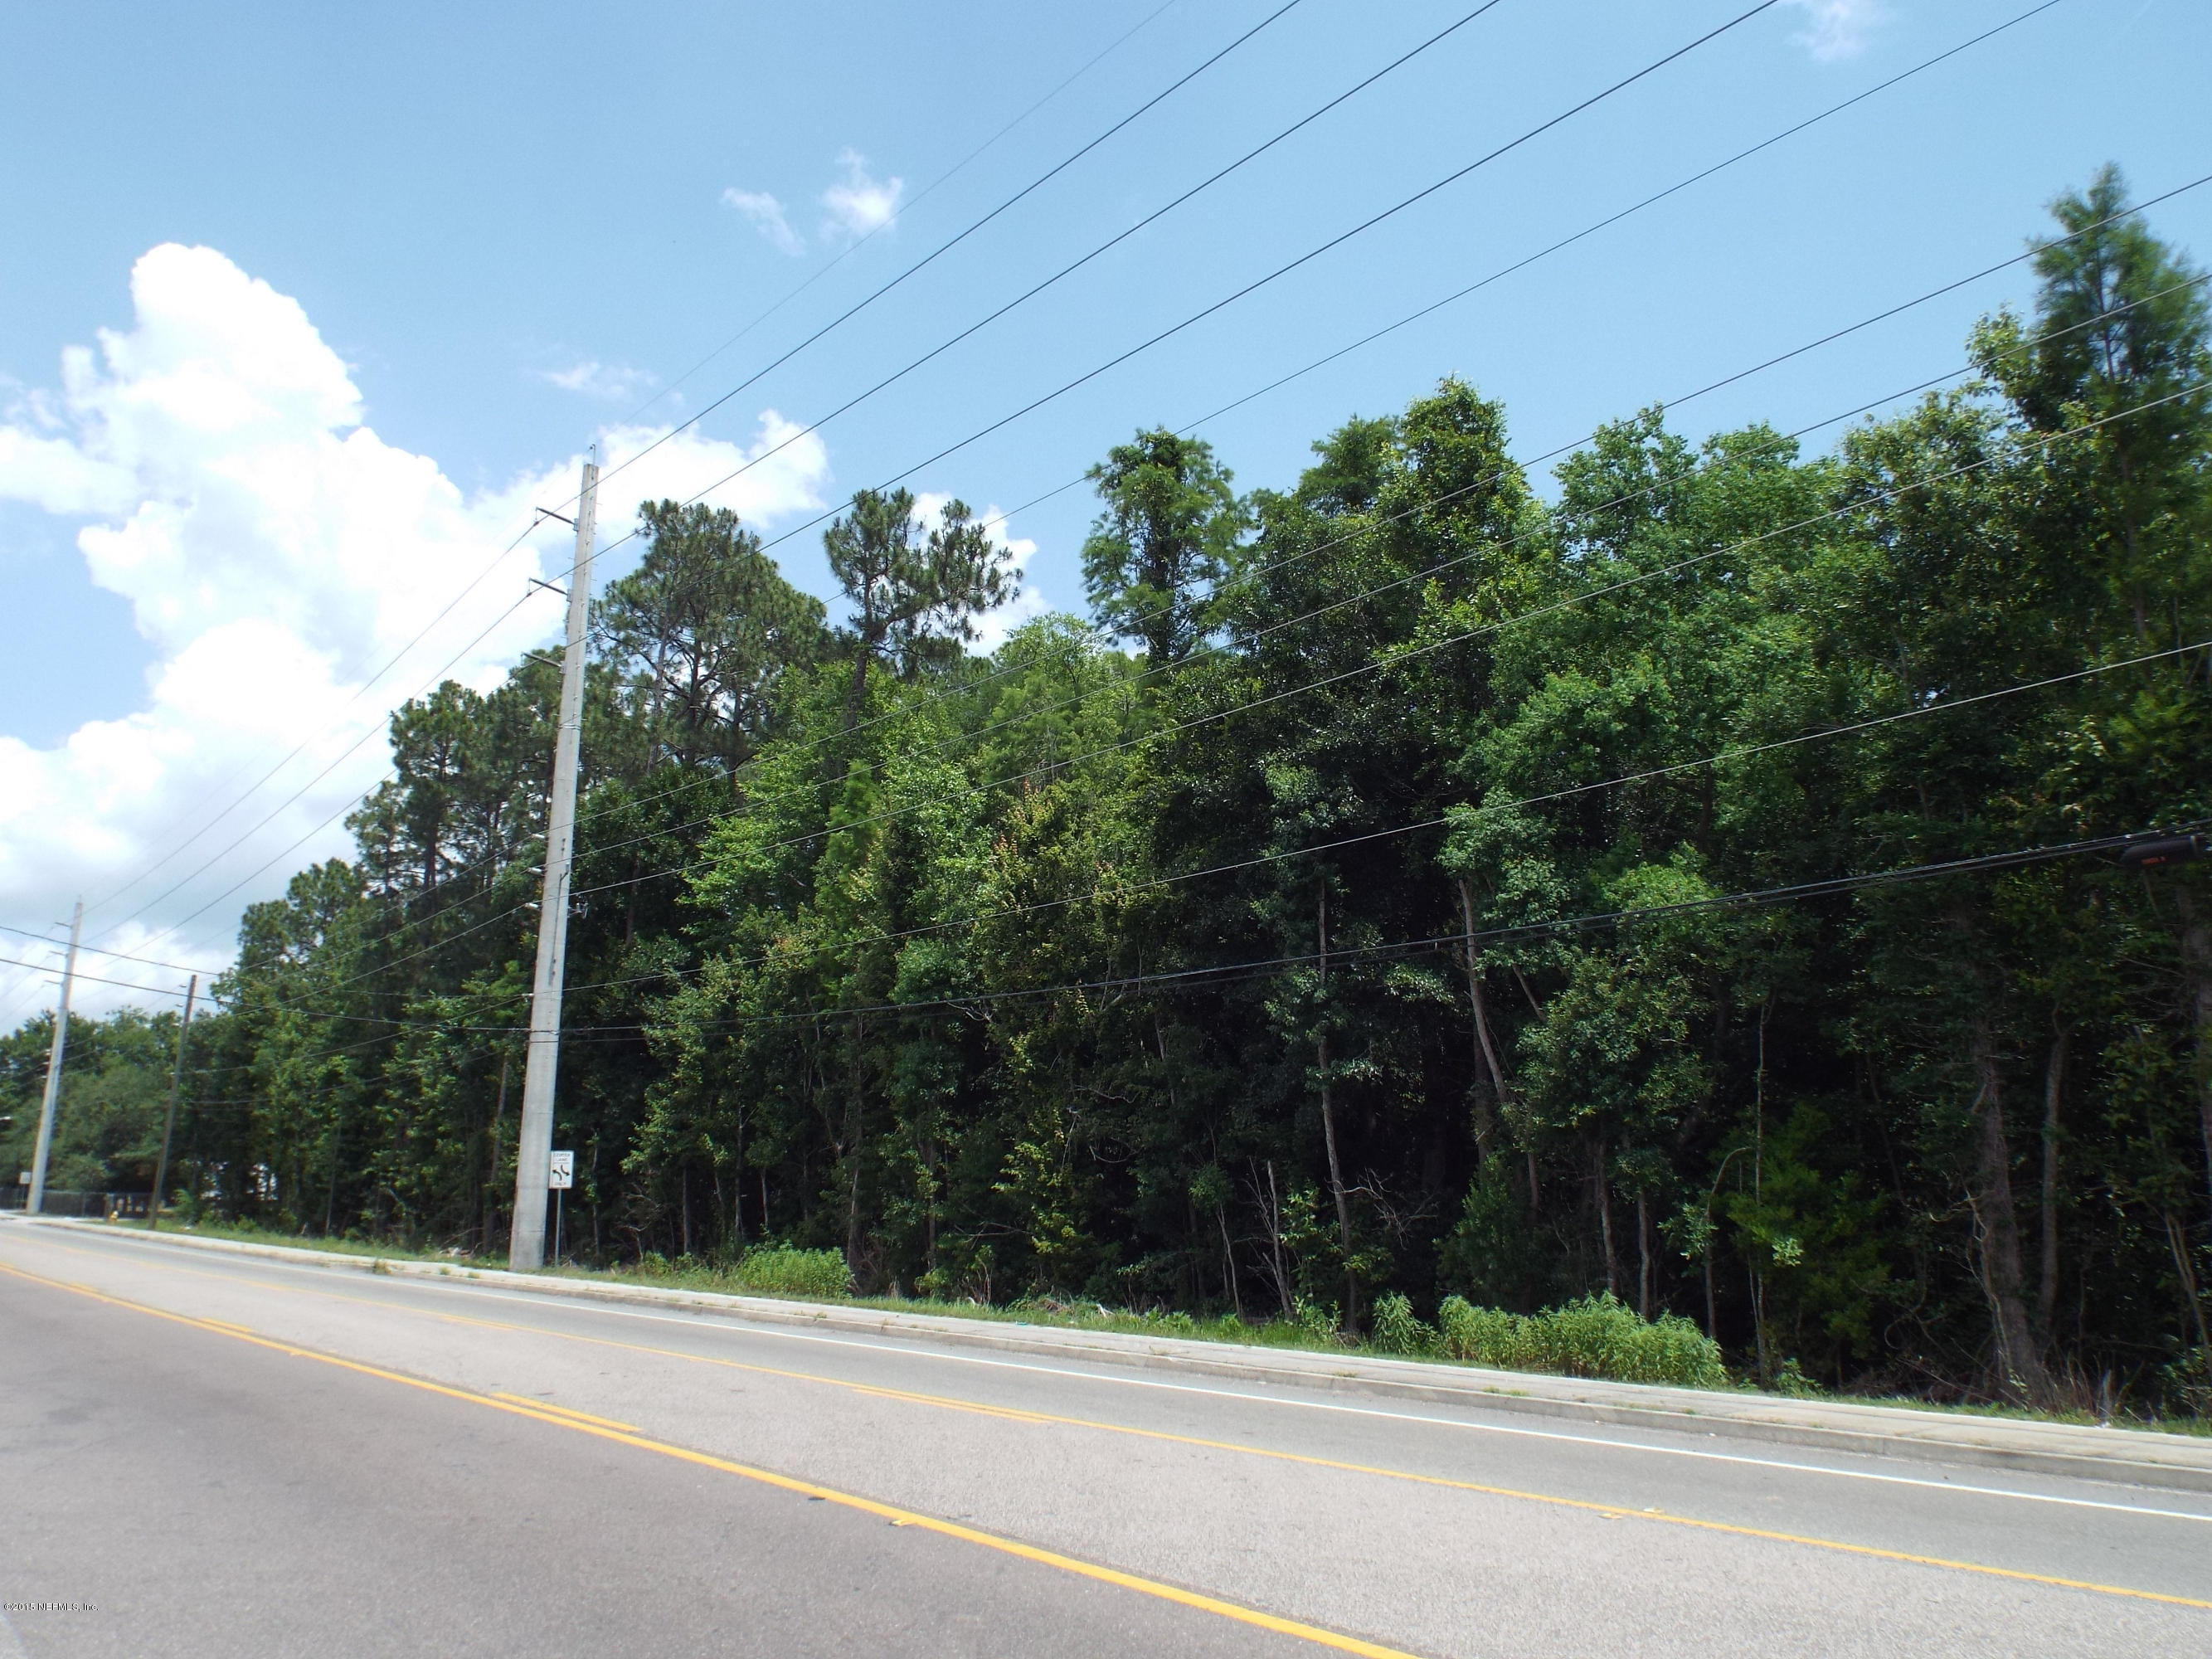 000 RAMPART, JACKSONVILLE, FLORIDA 32244, ,Vacant land,For sale,RAMPART,770917